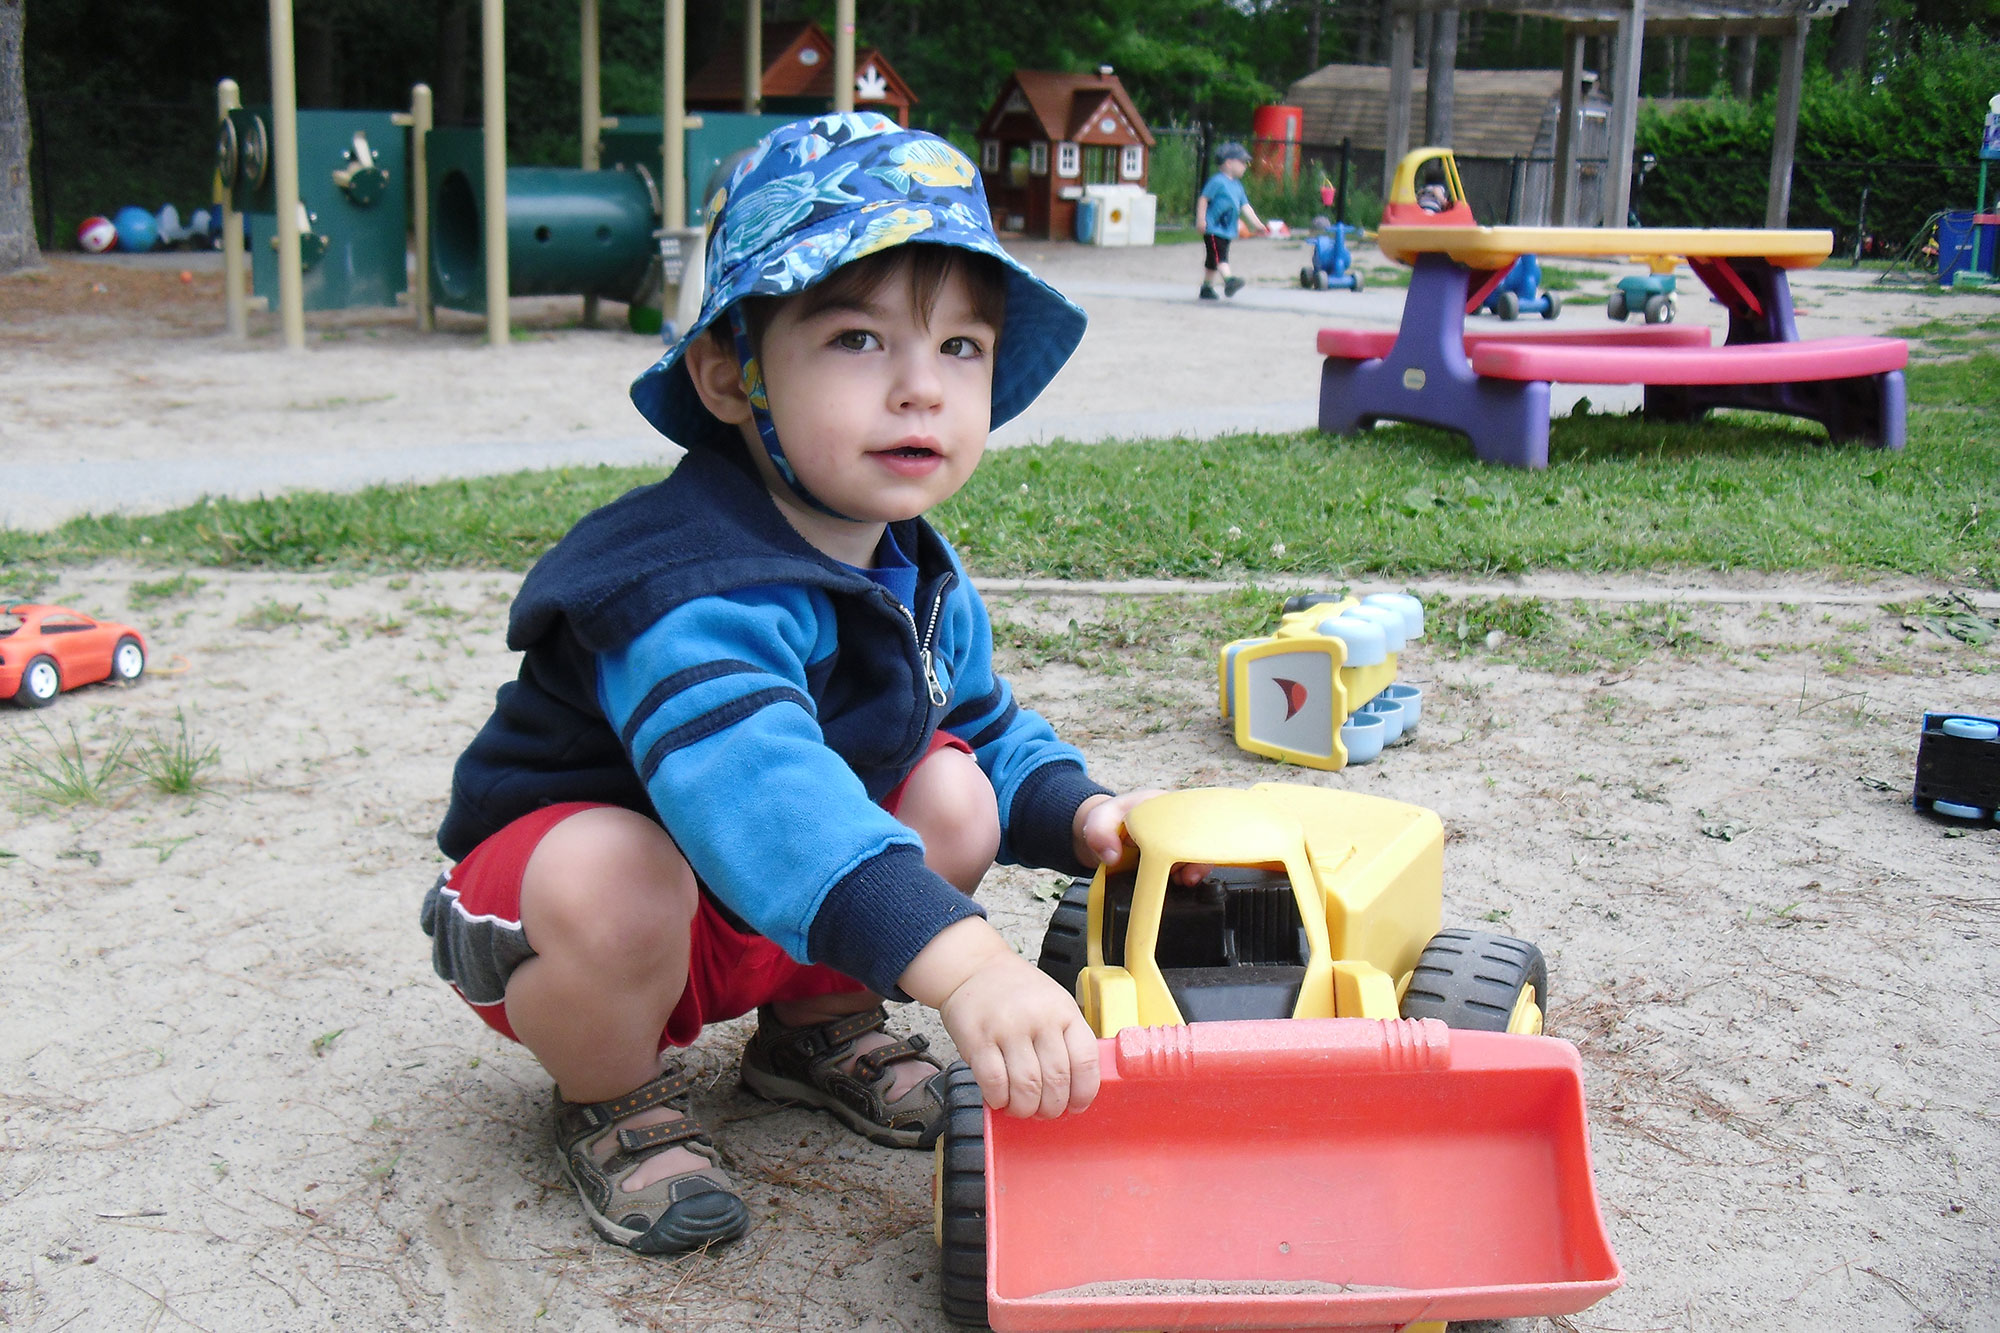 Boy playing with a truck in the sand